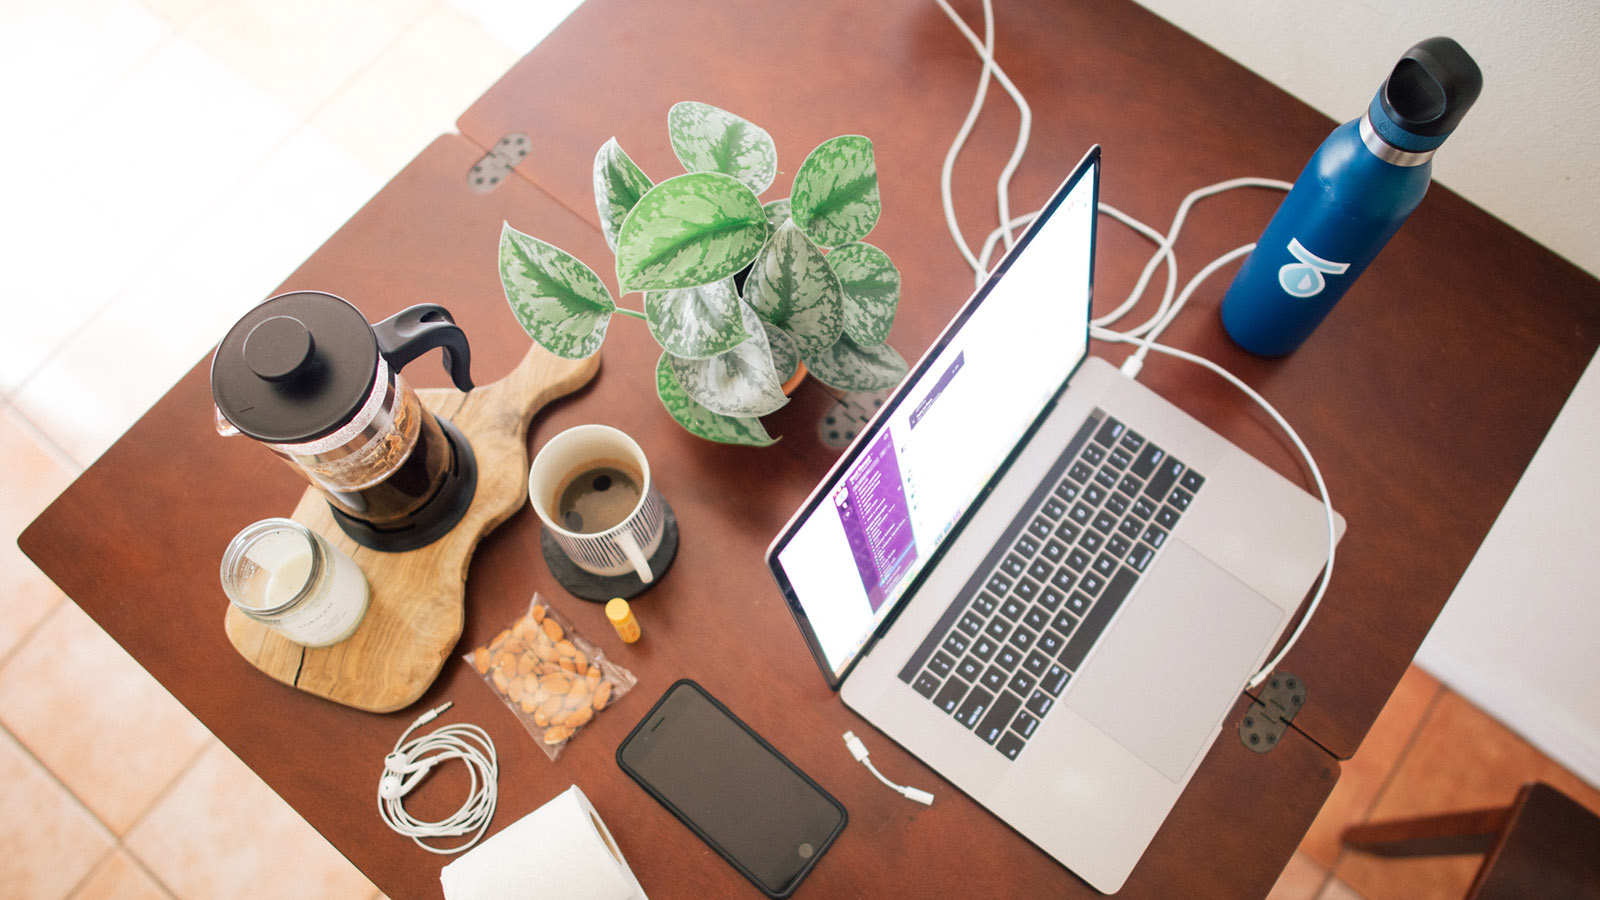 12 Essential Tools for Working Remotely